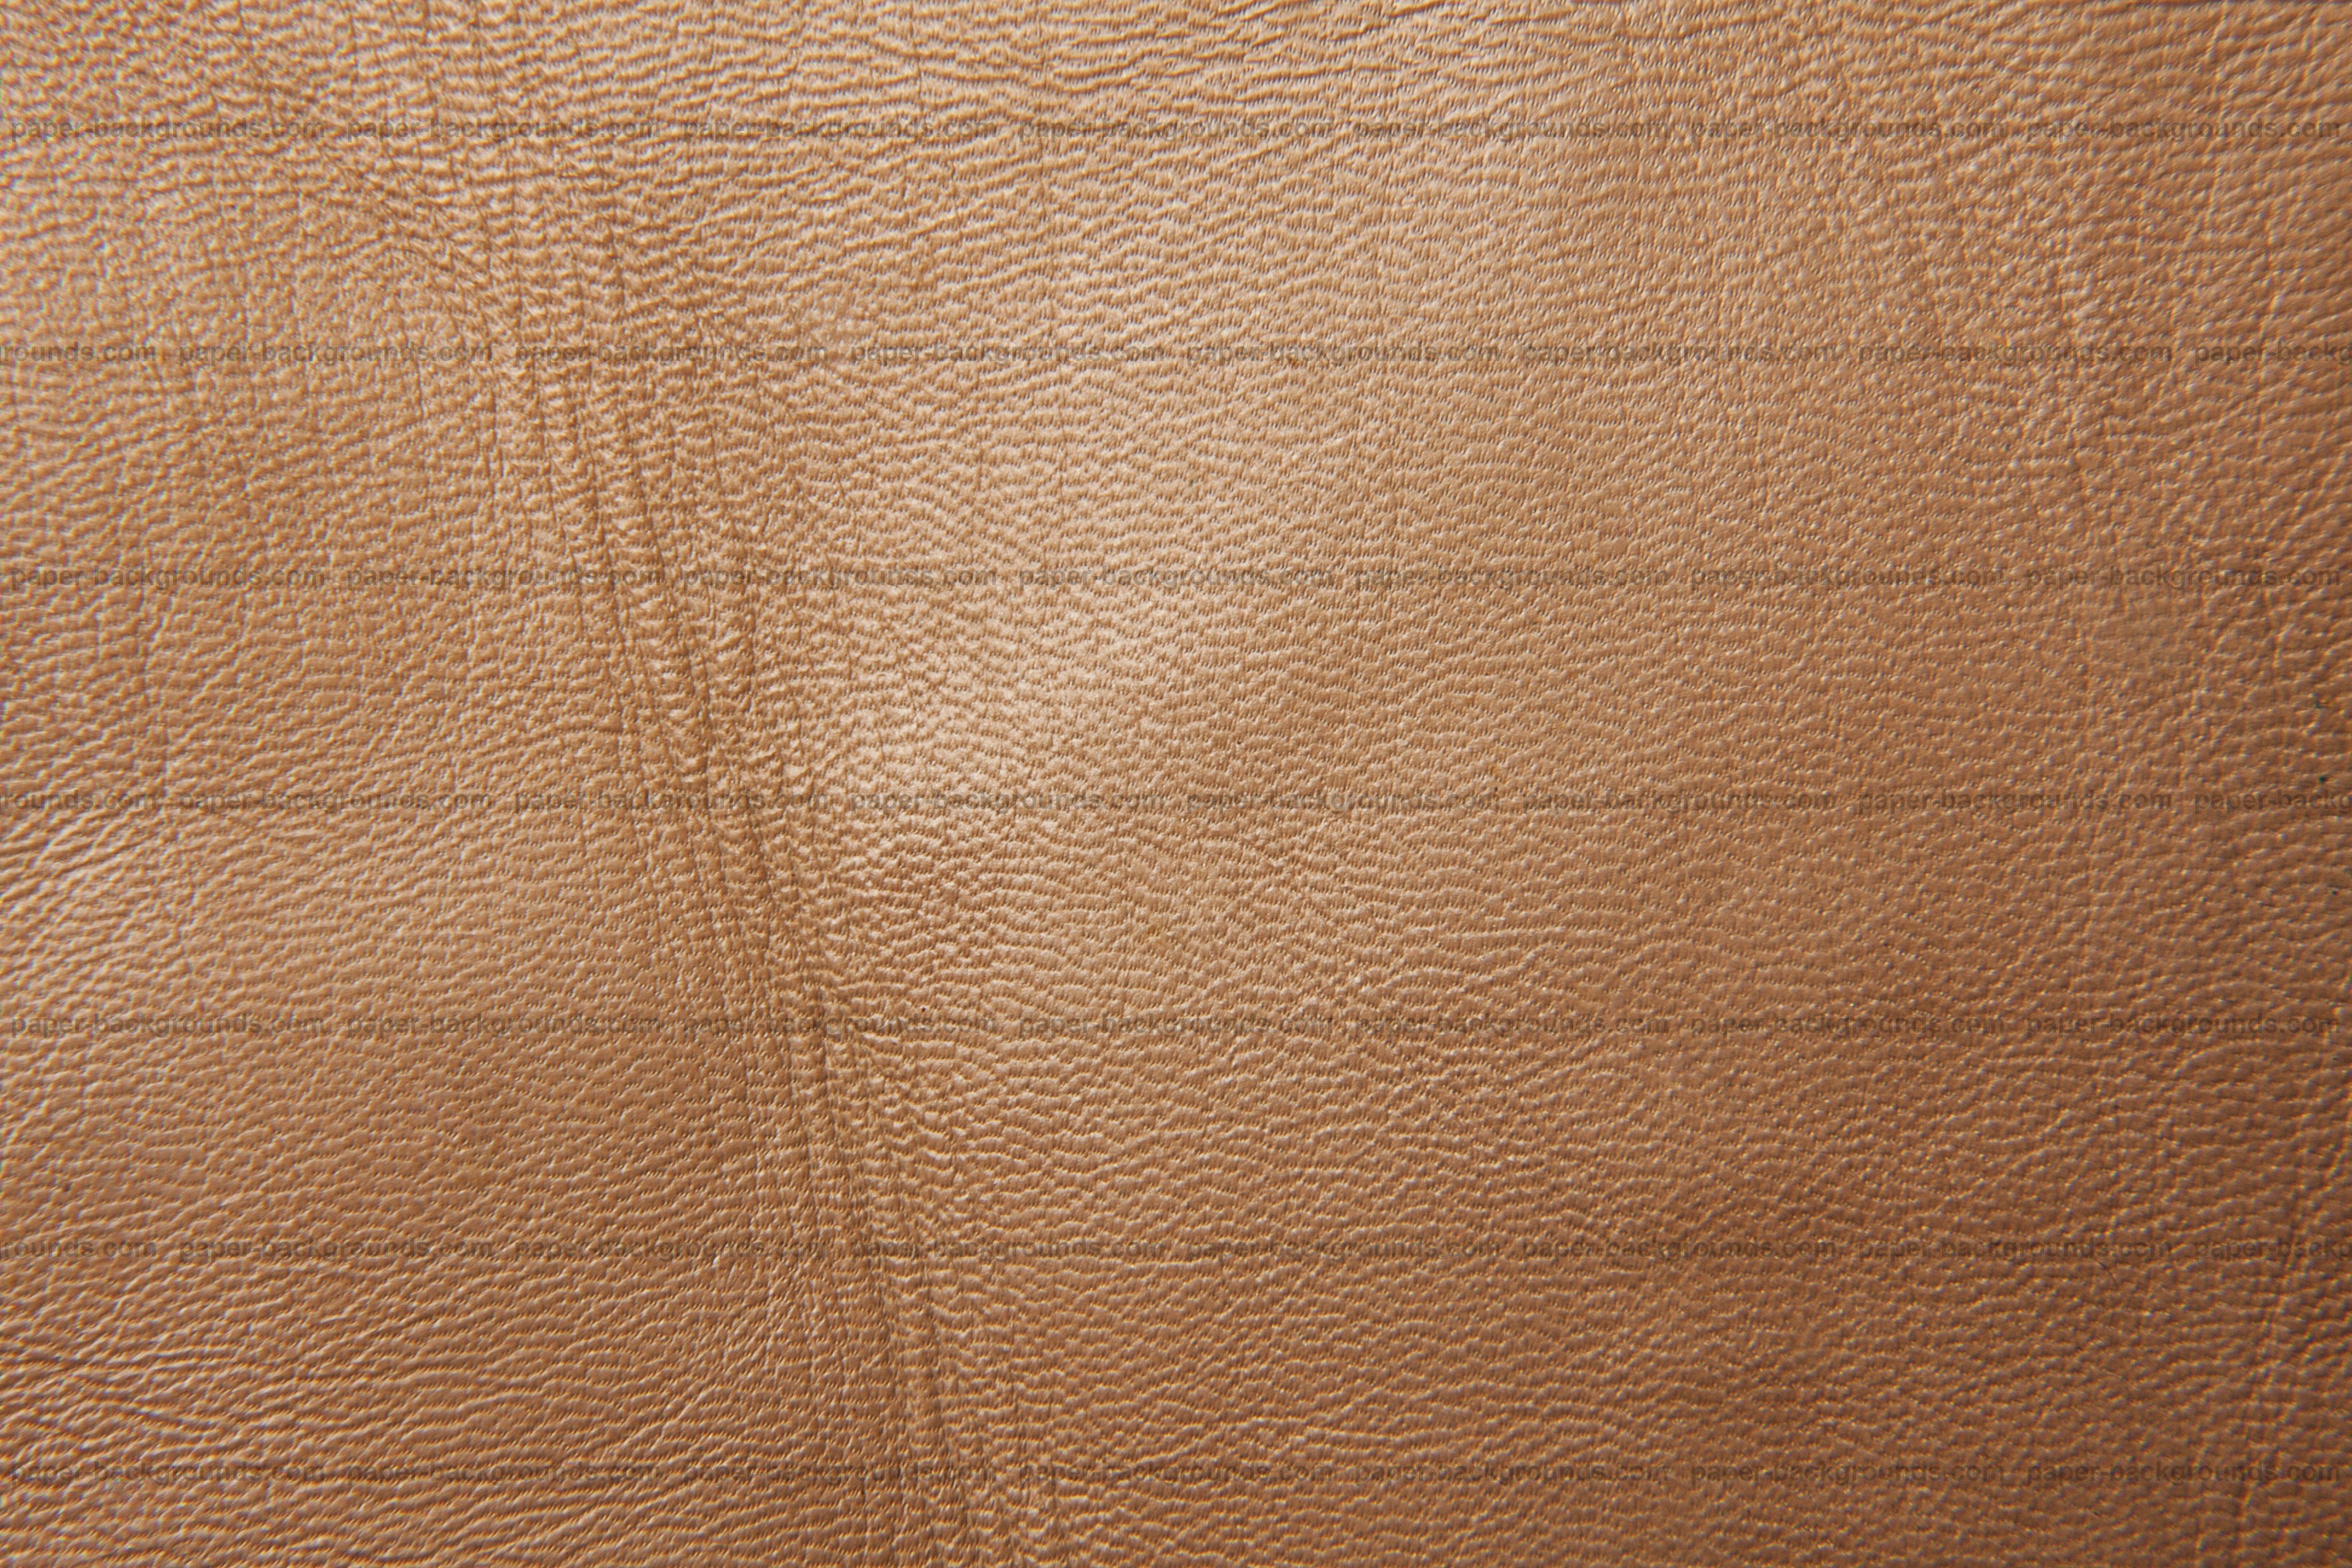 Light Brown Soft Leather Texture, High Resolution 4096 x 2731 pixels ...